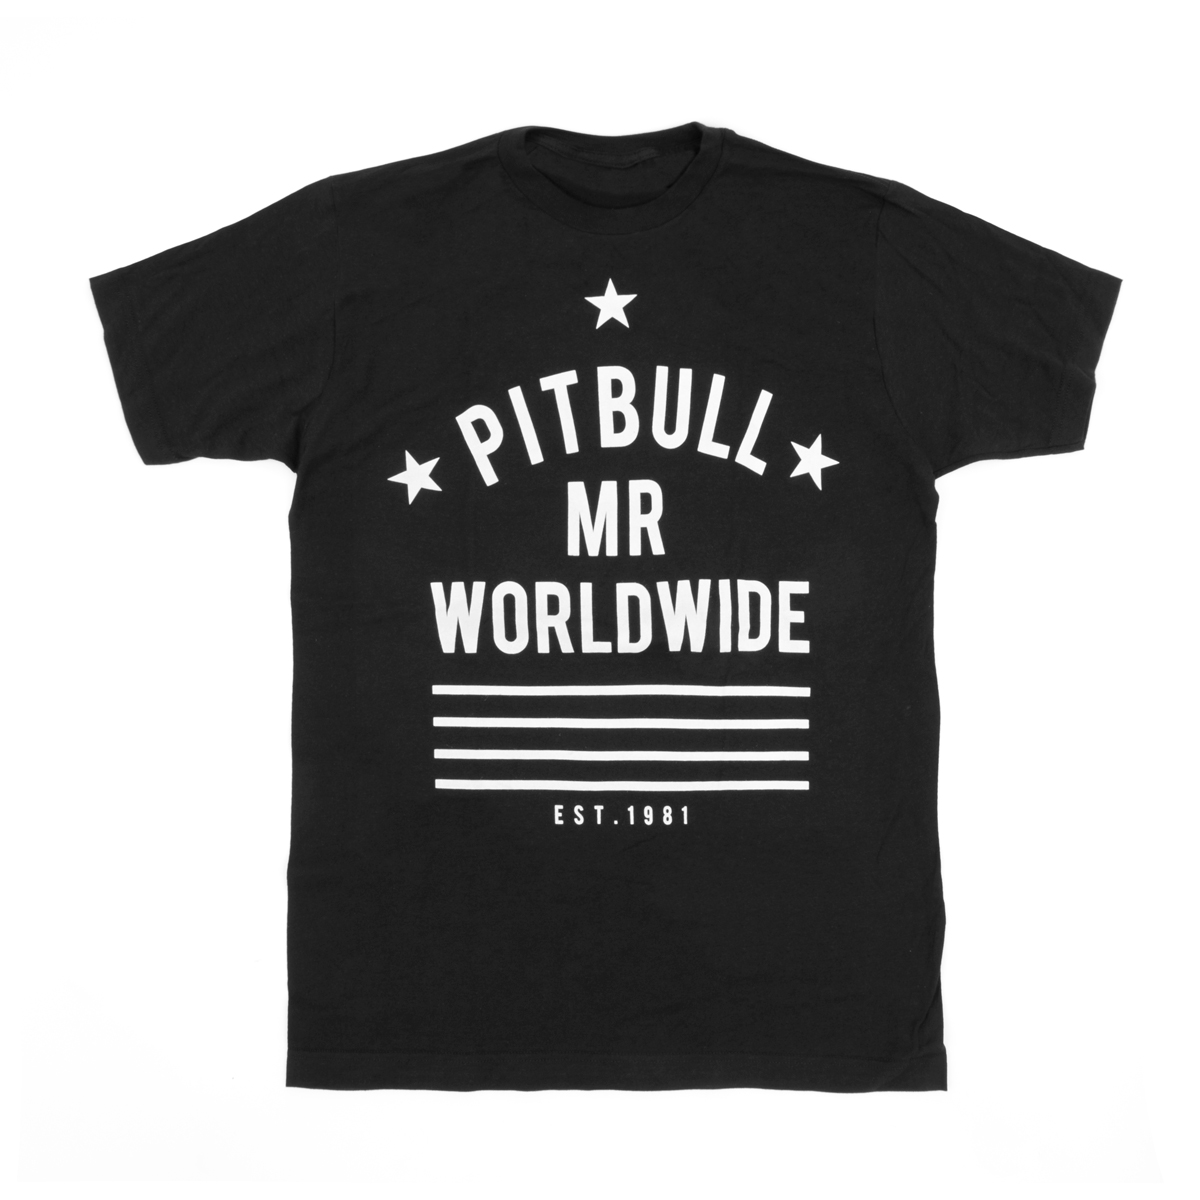 Pitbull Mr Worldwide T Shirt Shop The Pitbull Official Store